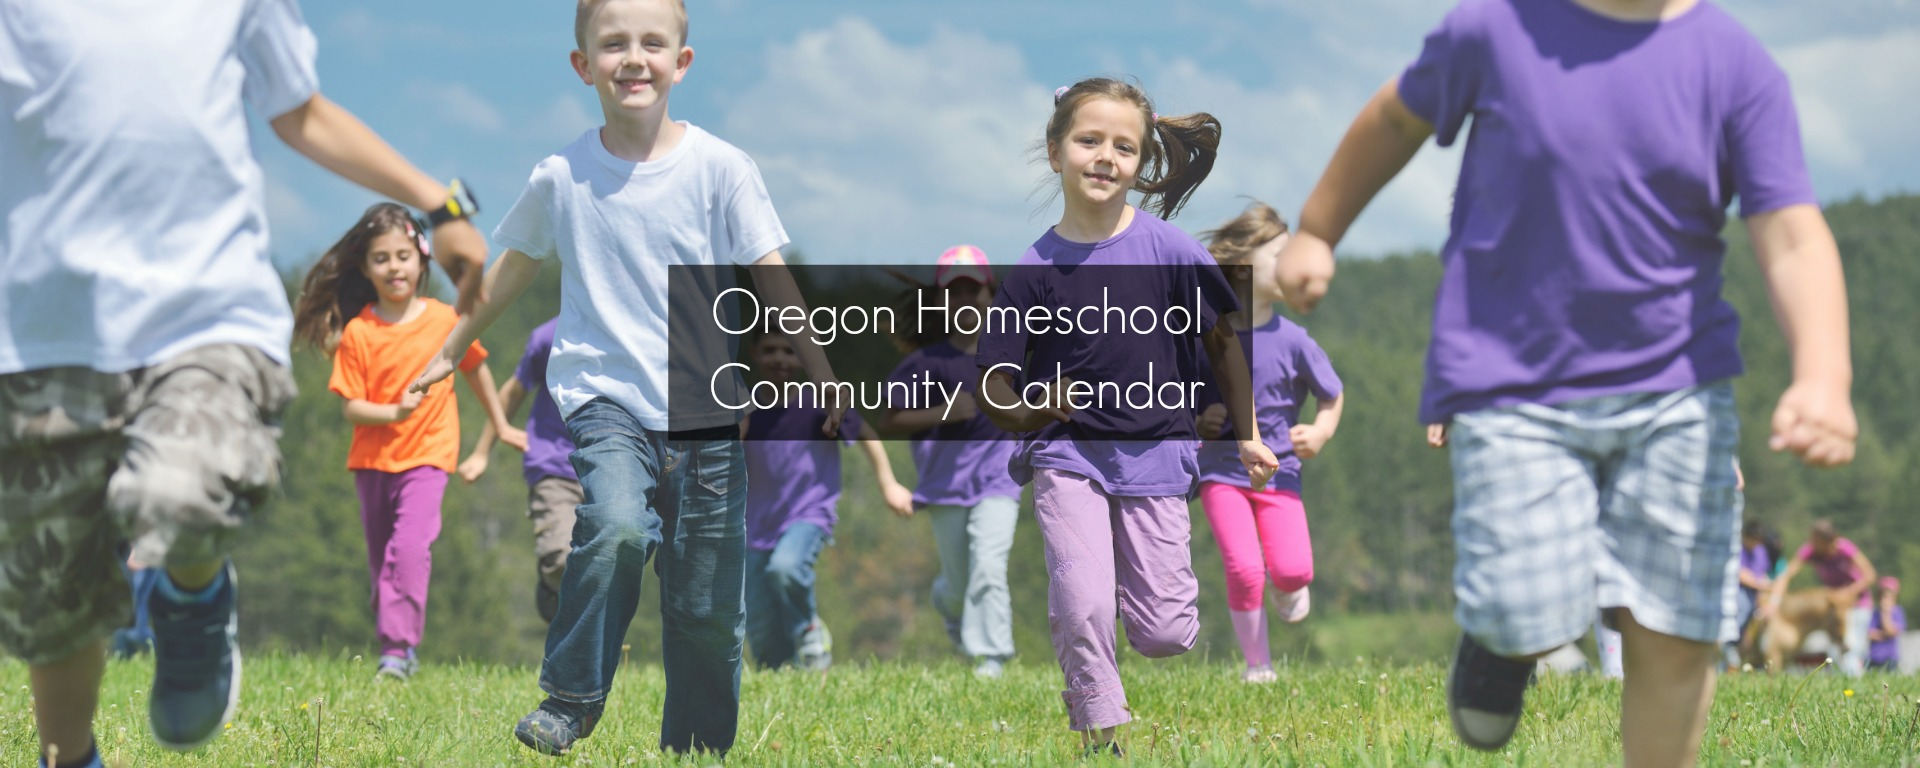 Find out what's going on and connect with homeschoolers at the Oregon Homeschool Community Calendar